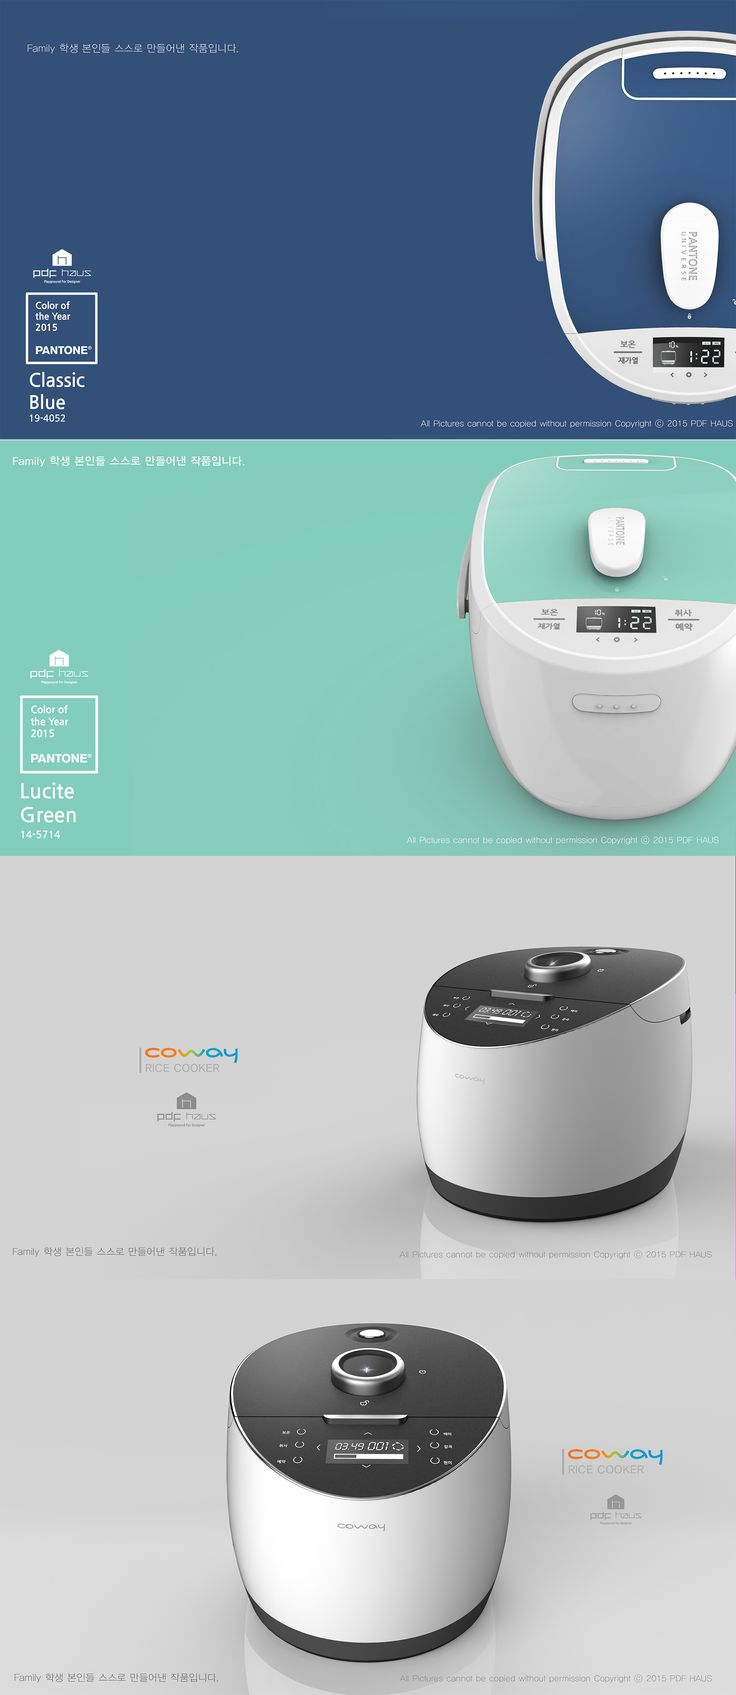 Rice Cooker Design for Pantone, Coway Etude for Understaning Brand identity   PDF HAUS_ Design Academy